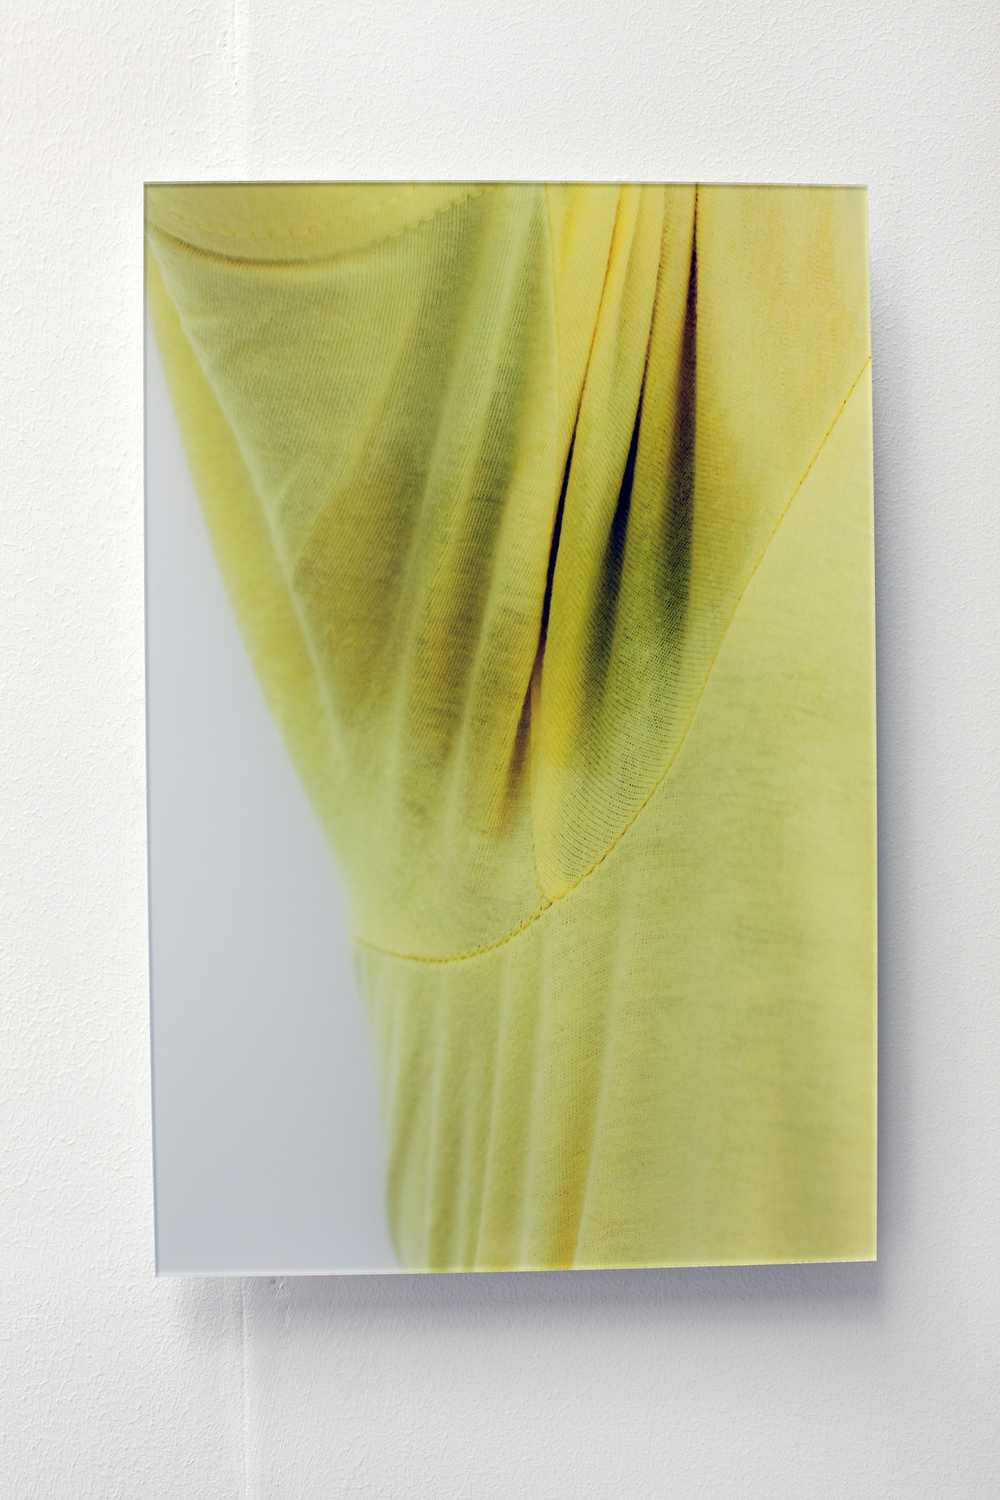 Sweat-stress (armpit left/bright-yellow), Ultrachrome print with diasec, edition of 4+2ap, 20 x 30 cm